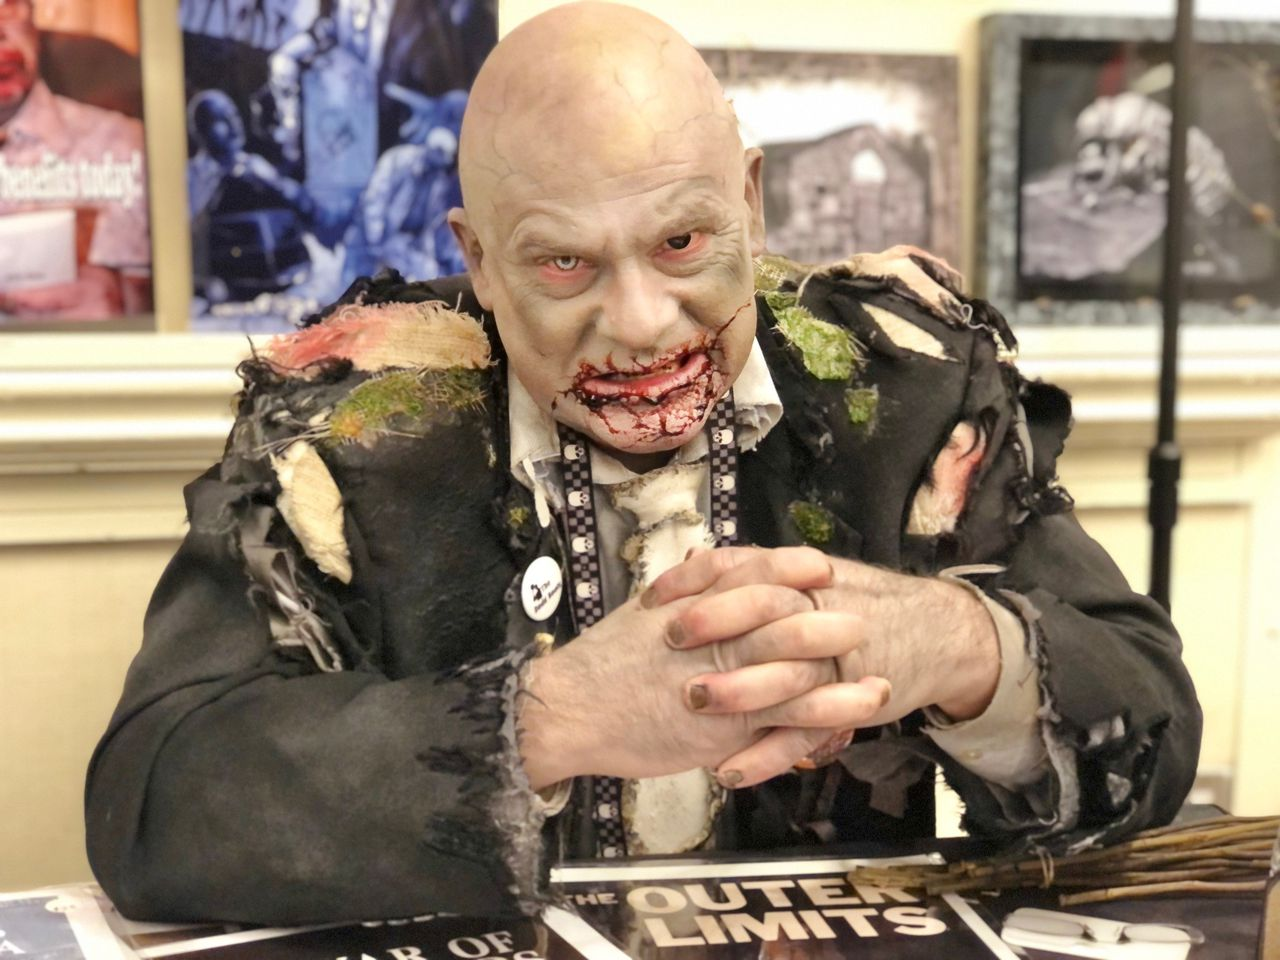 all-the-celebrity-sightings-at-michigan's-largest-horror-comic-con,-motor-city-nightmares